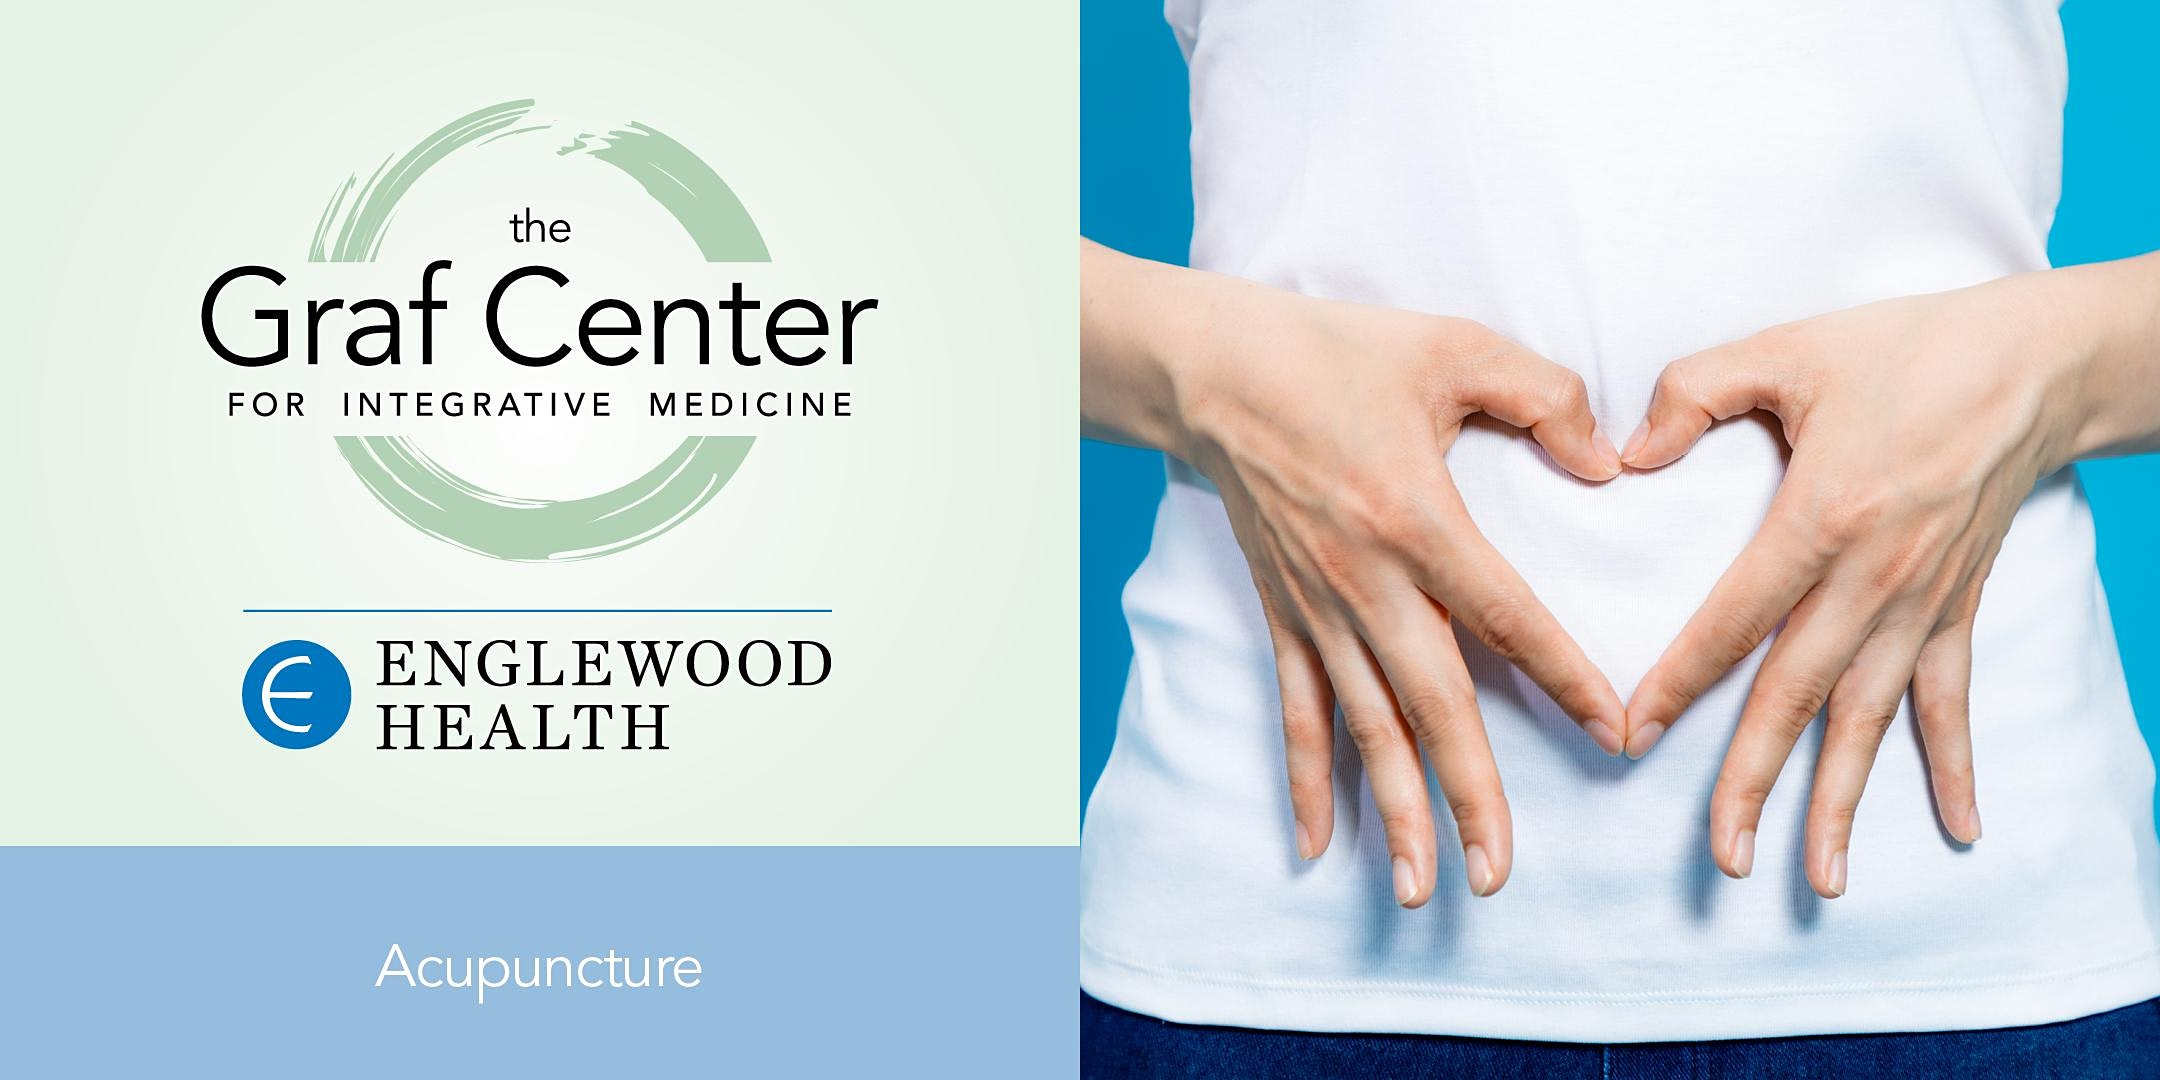 More info: Acupuncture for Gut Health